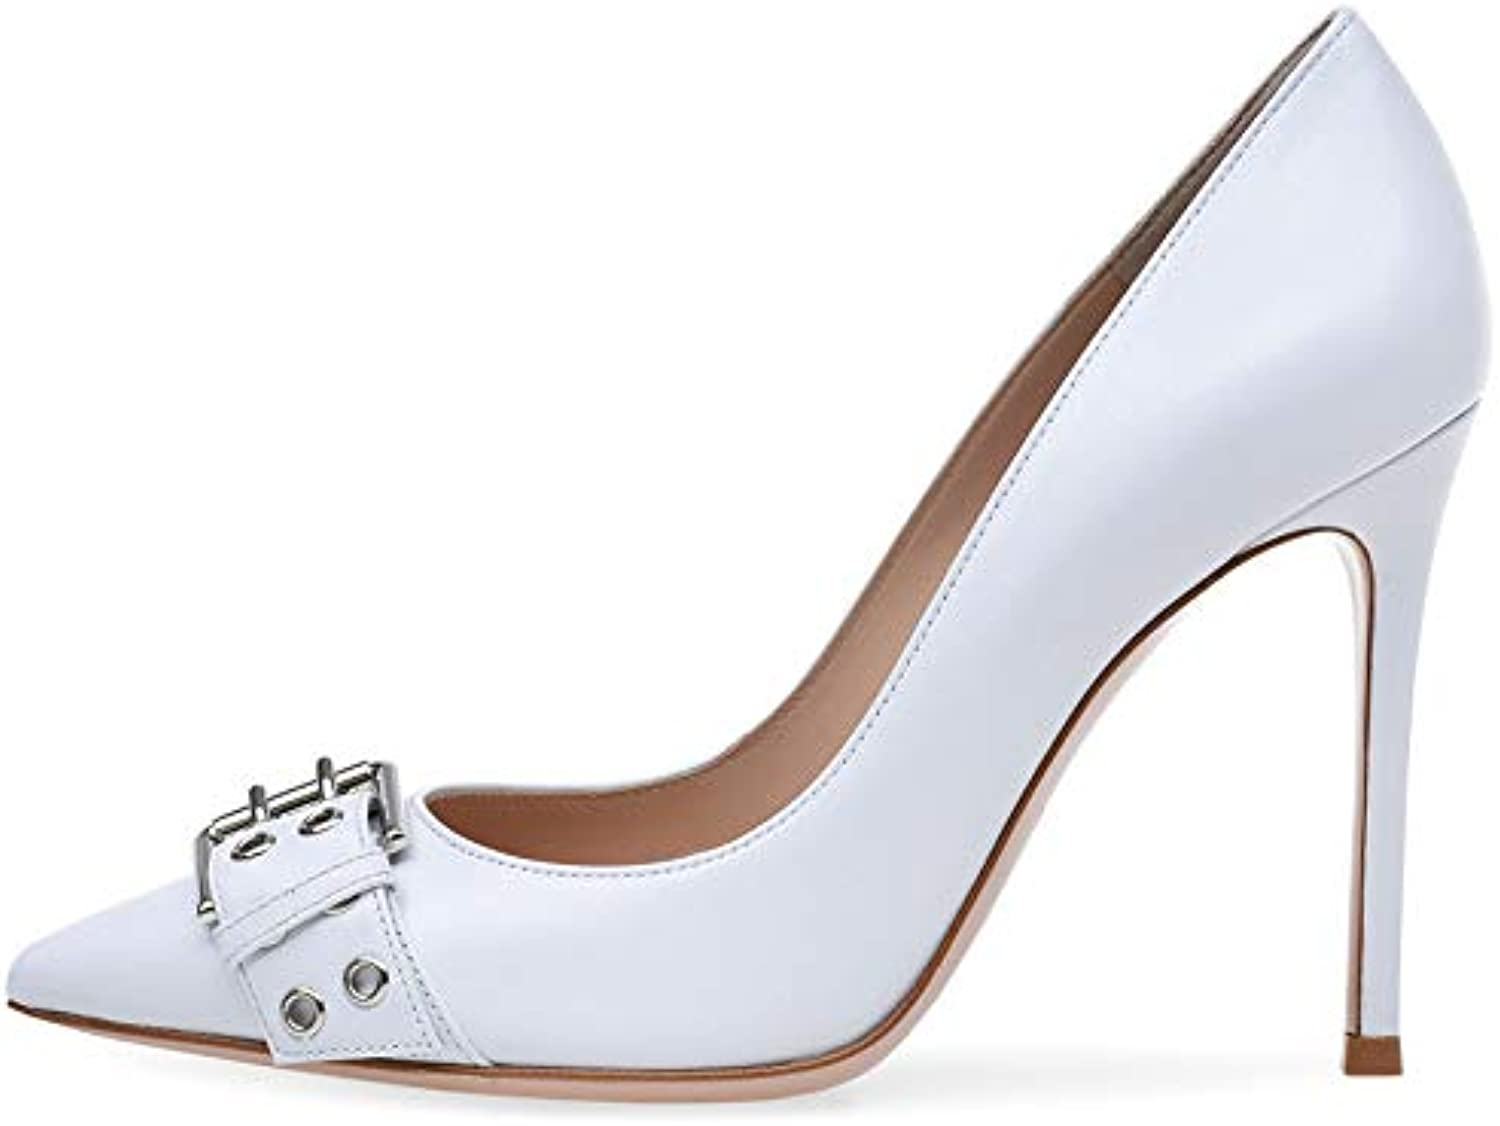 Women's high Heel Sandals, high Heel - PU Single shoes - White Wedding shoes - Stiletto Heels (high 11-13cm)